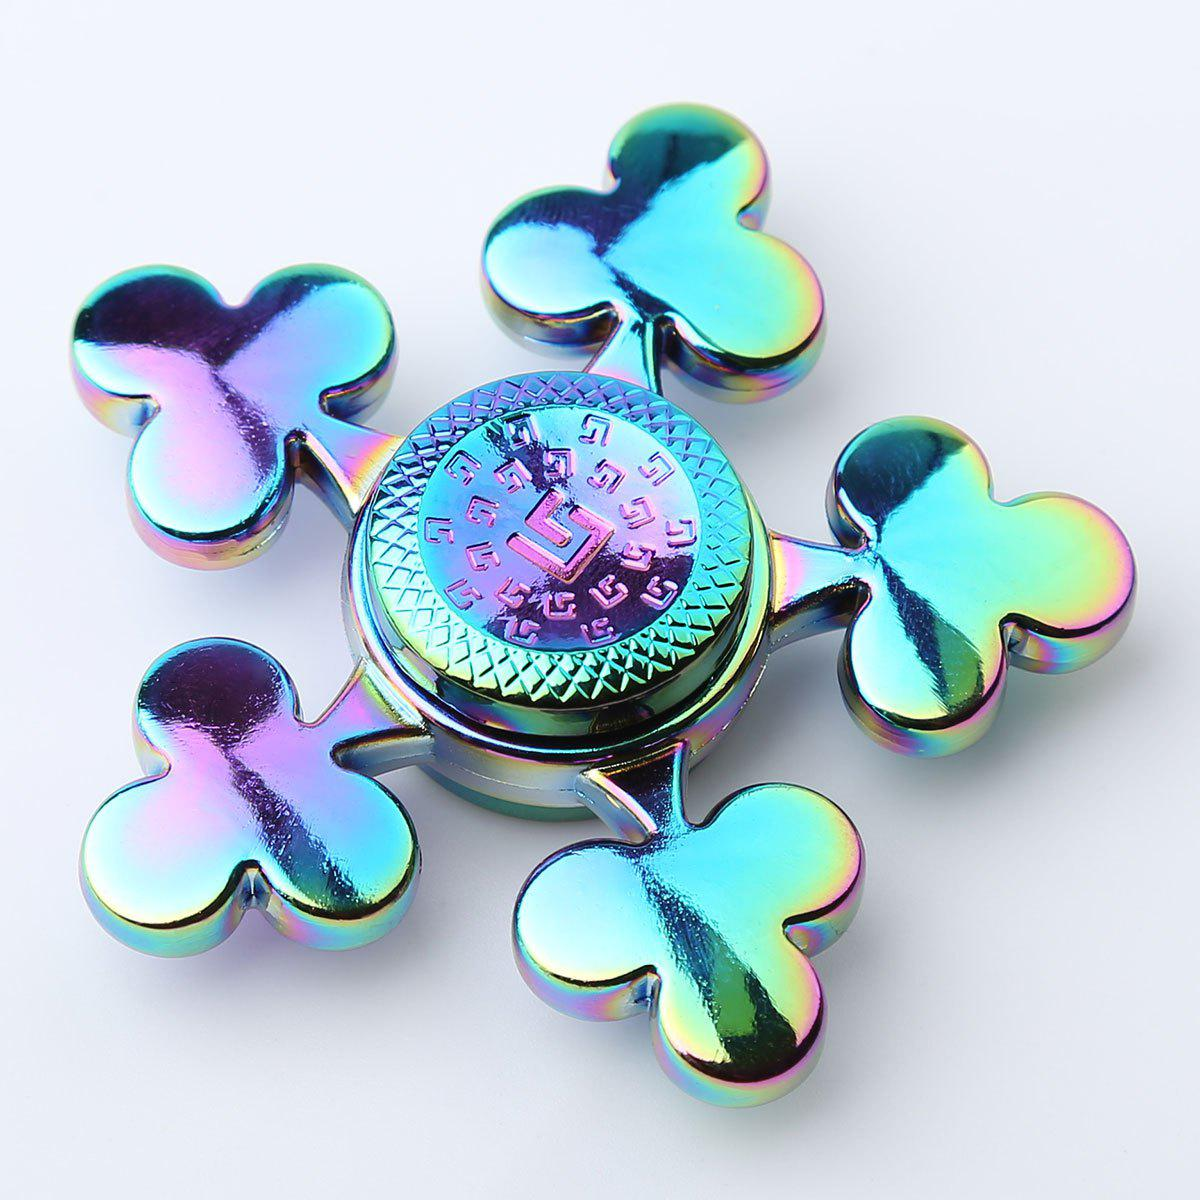 Fidget Toy Stress Relief Spinner à la main pour le temps de tuer - coloré 6*6*1.5CM